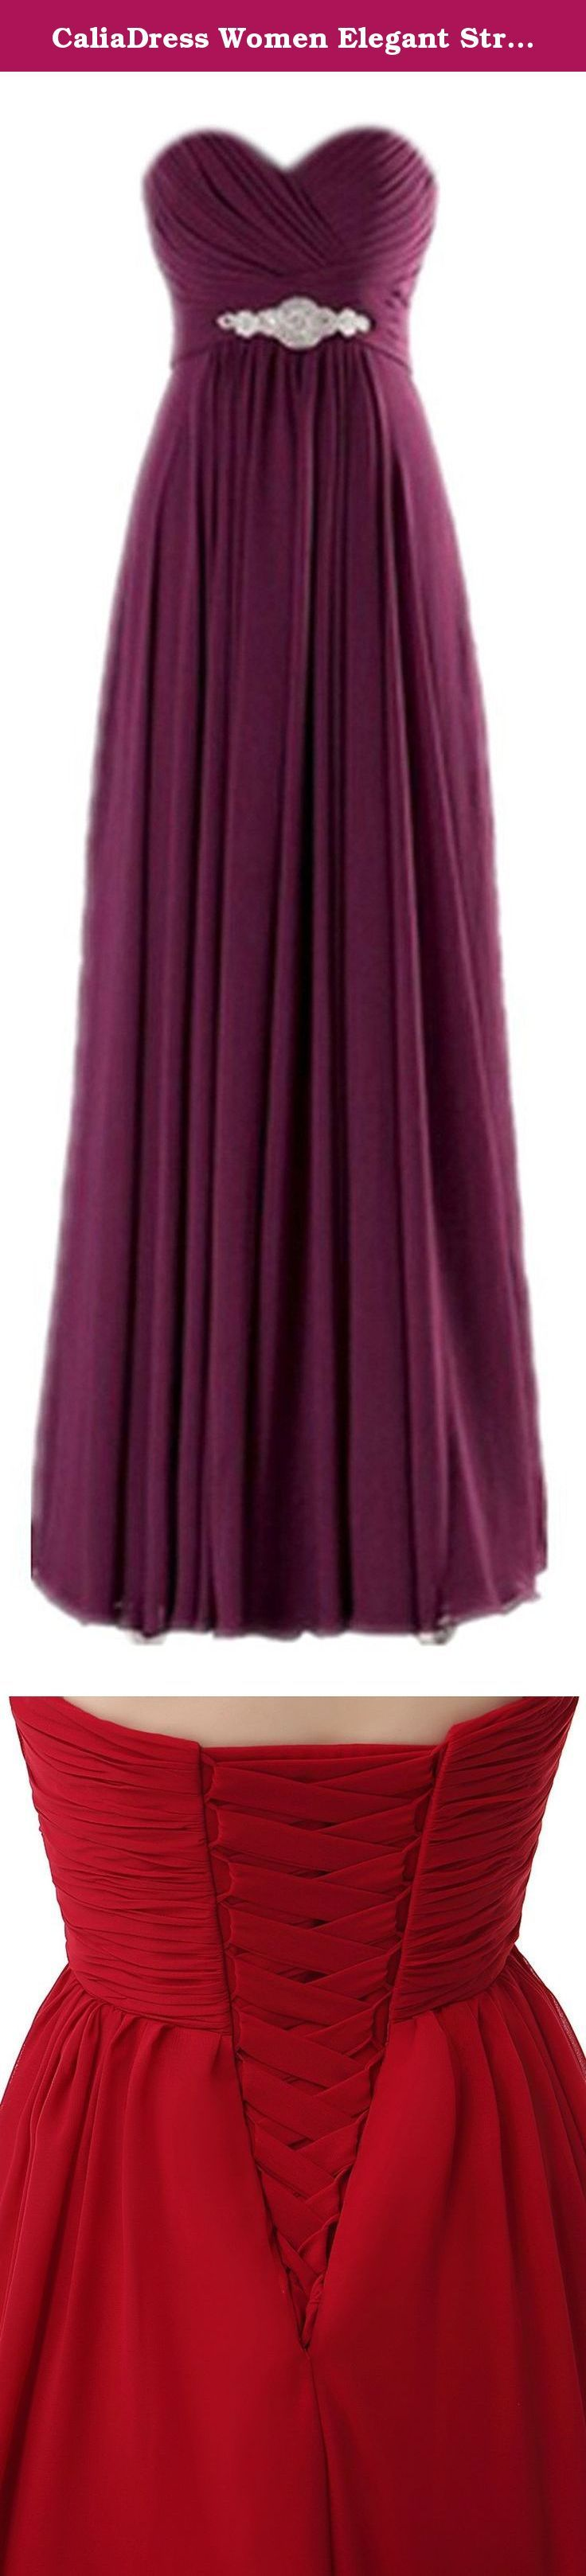 CaliaDress Women Elegant Strapless Bridesmaid Dress Long Prom Formal Gowns C271LF Grape Purple US24W. Welcome to CaliaDress: Note: 1.This pretty dress is made of chiffon,soft material,good feeling,hand-made,gorgeous design,popular color,elegant,fashion,show your noble and elegant temperament. 2.The floor length A line sweetheart design,encrusted with beadings,rhinestones.fashion,practical and perfect gift for classy and elegant ladies. 3.The elegant dress appropriate for a...